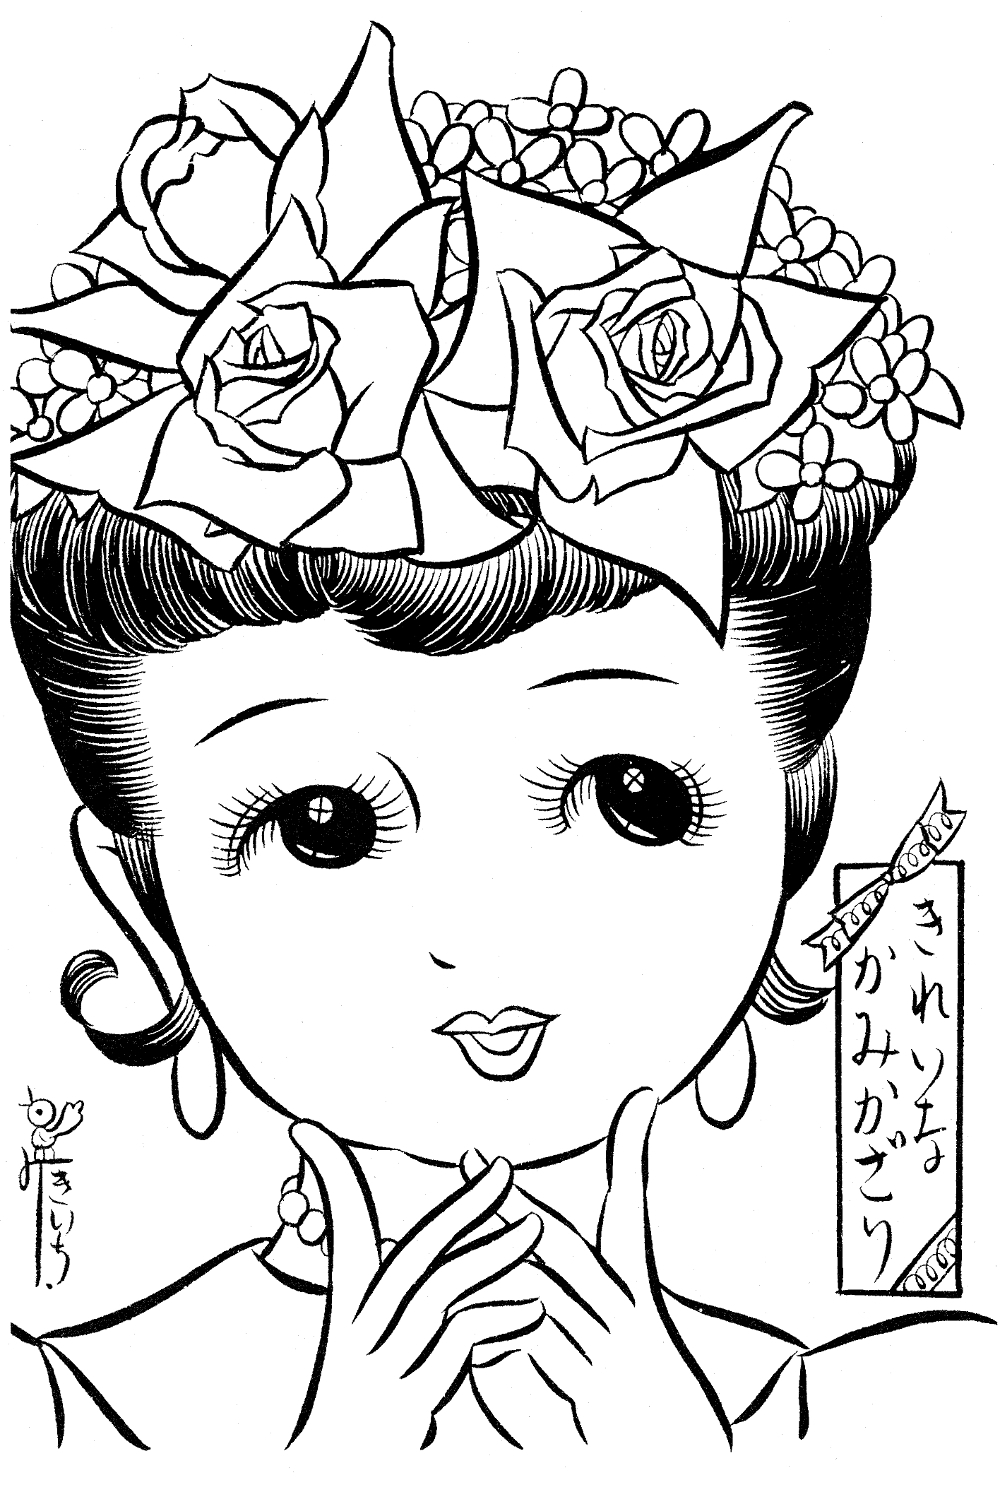 disney princess coloring pages - 1d2838f22fe1a3cab8bdfafadd7551a6